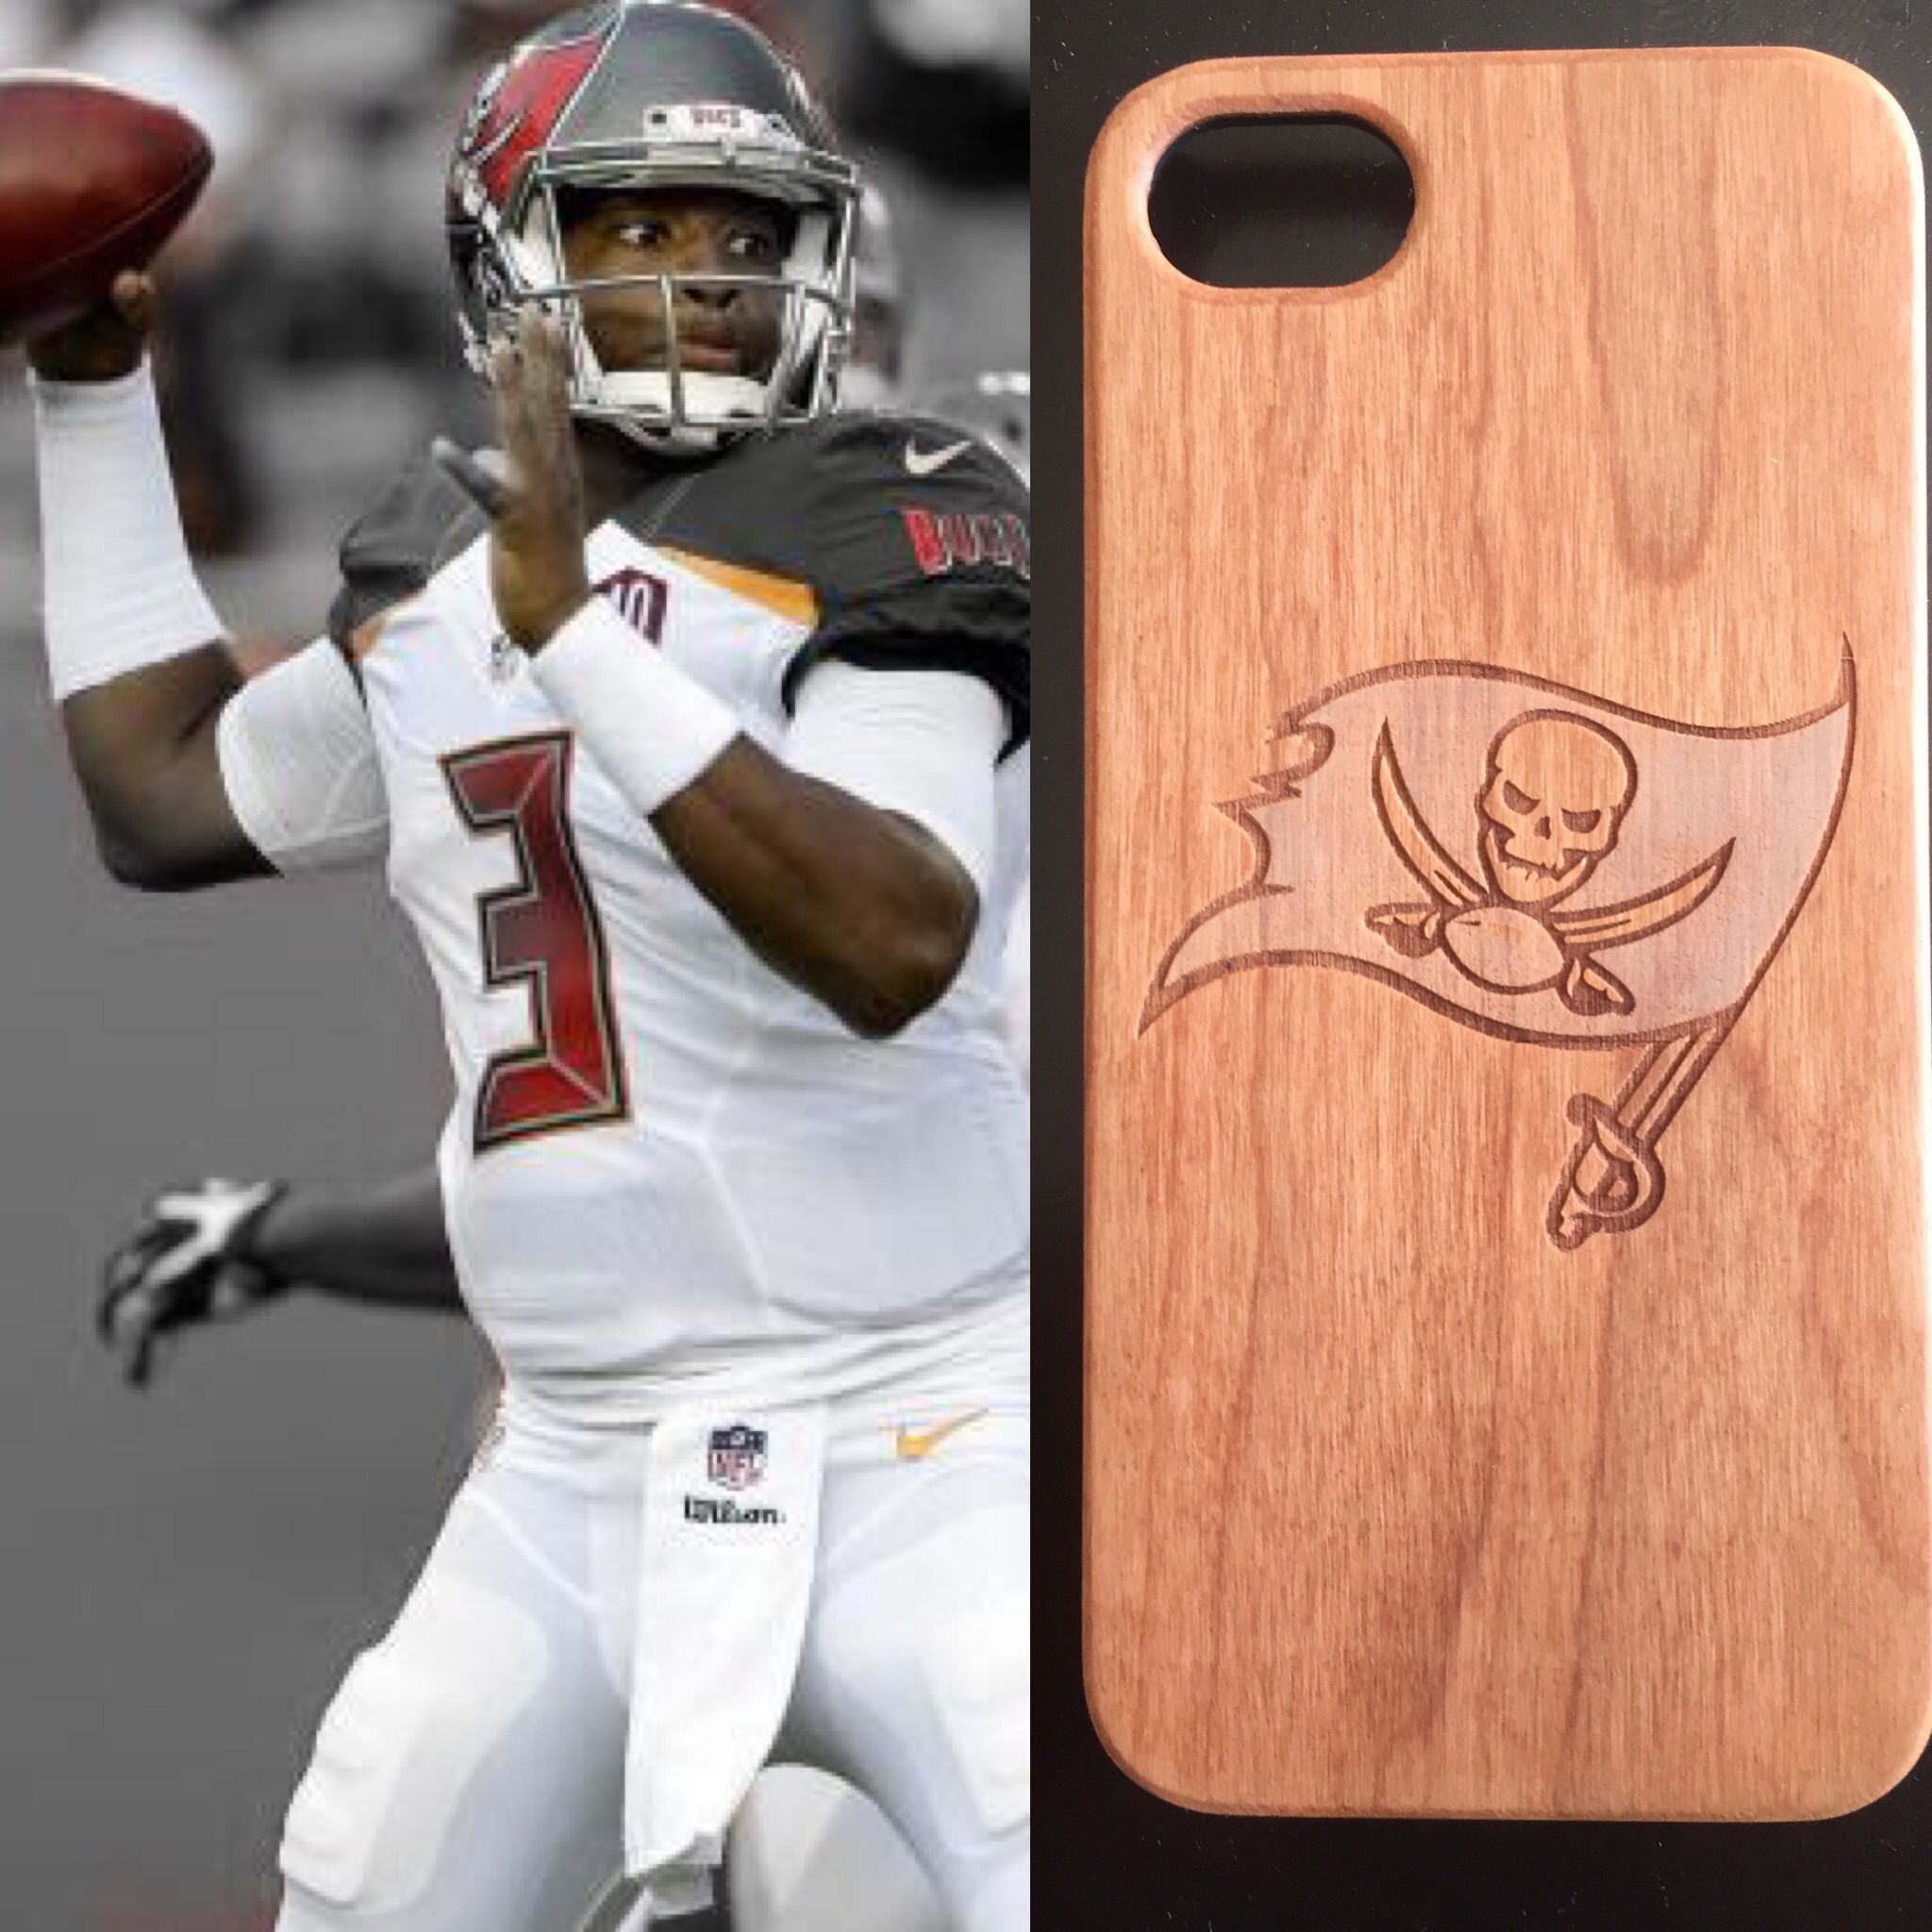 Cherry wood Tampa Bay Buccaneers' case